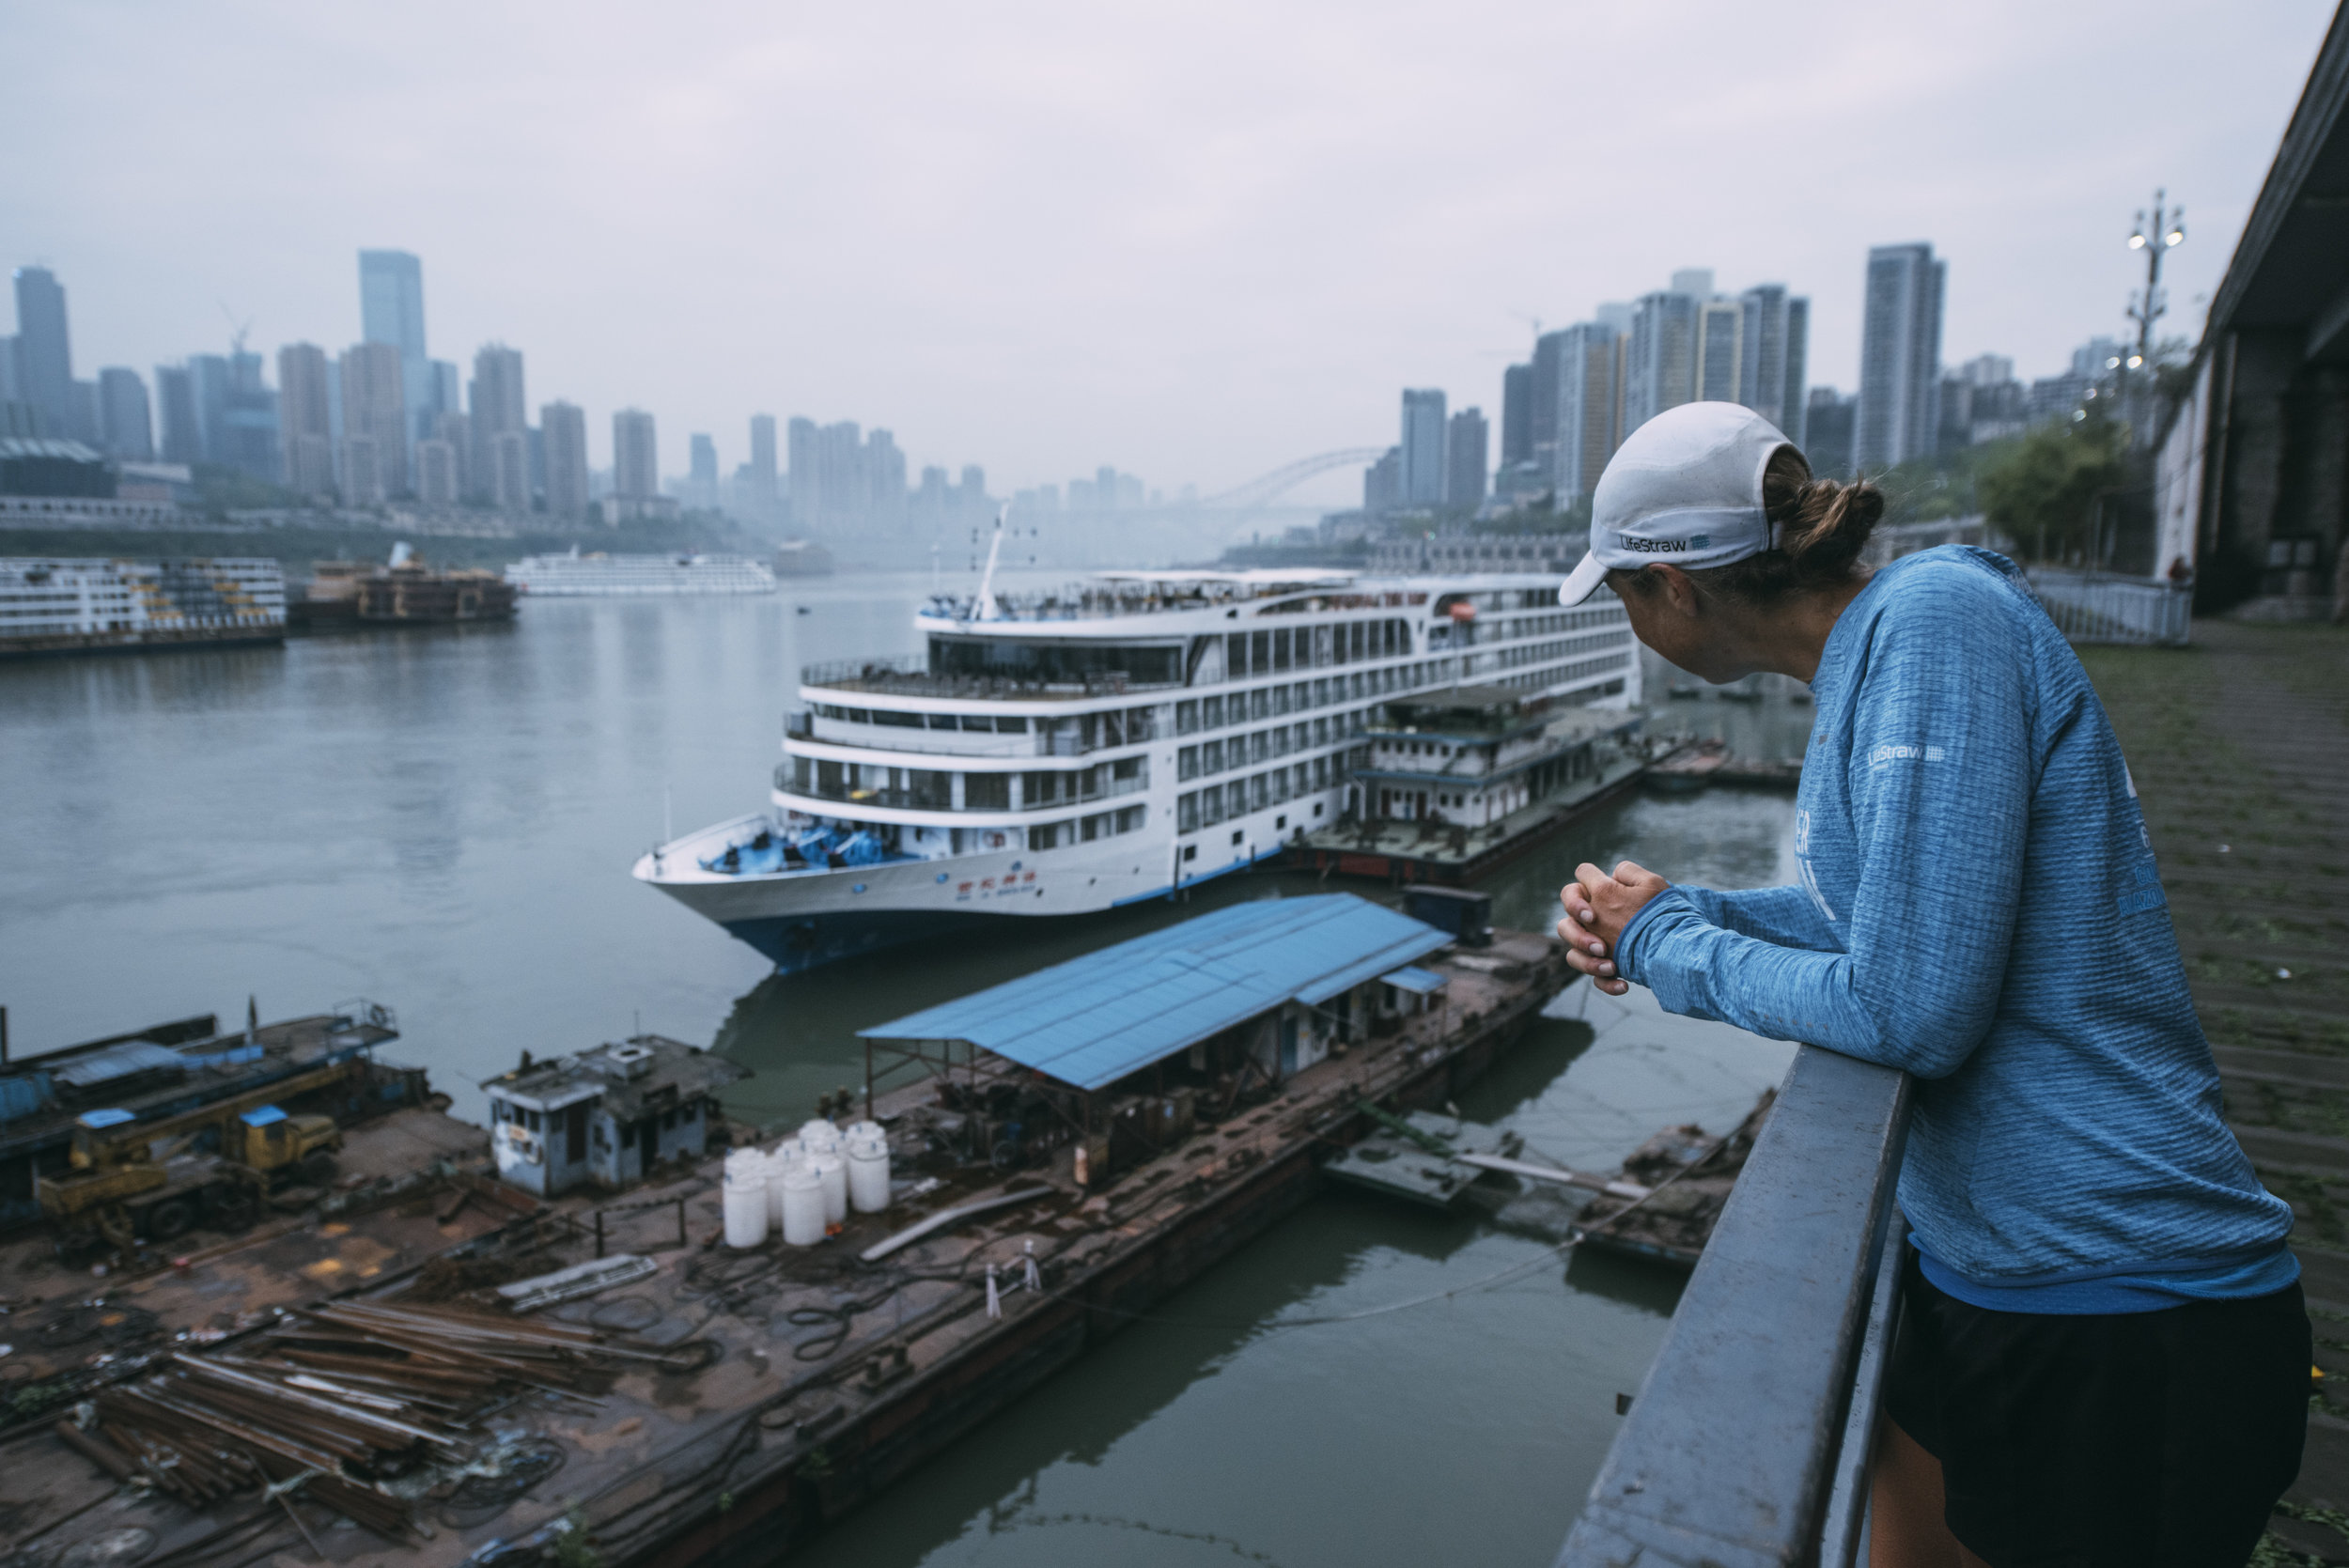 The Yangtze River is the world's busiest inland waterway, and I've come to run here to see how her water is being protected from pollution and contamination. Photo credit: Kelvin Trautman